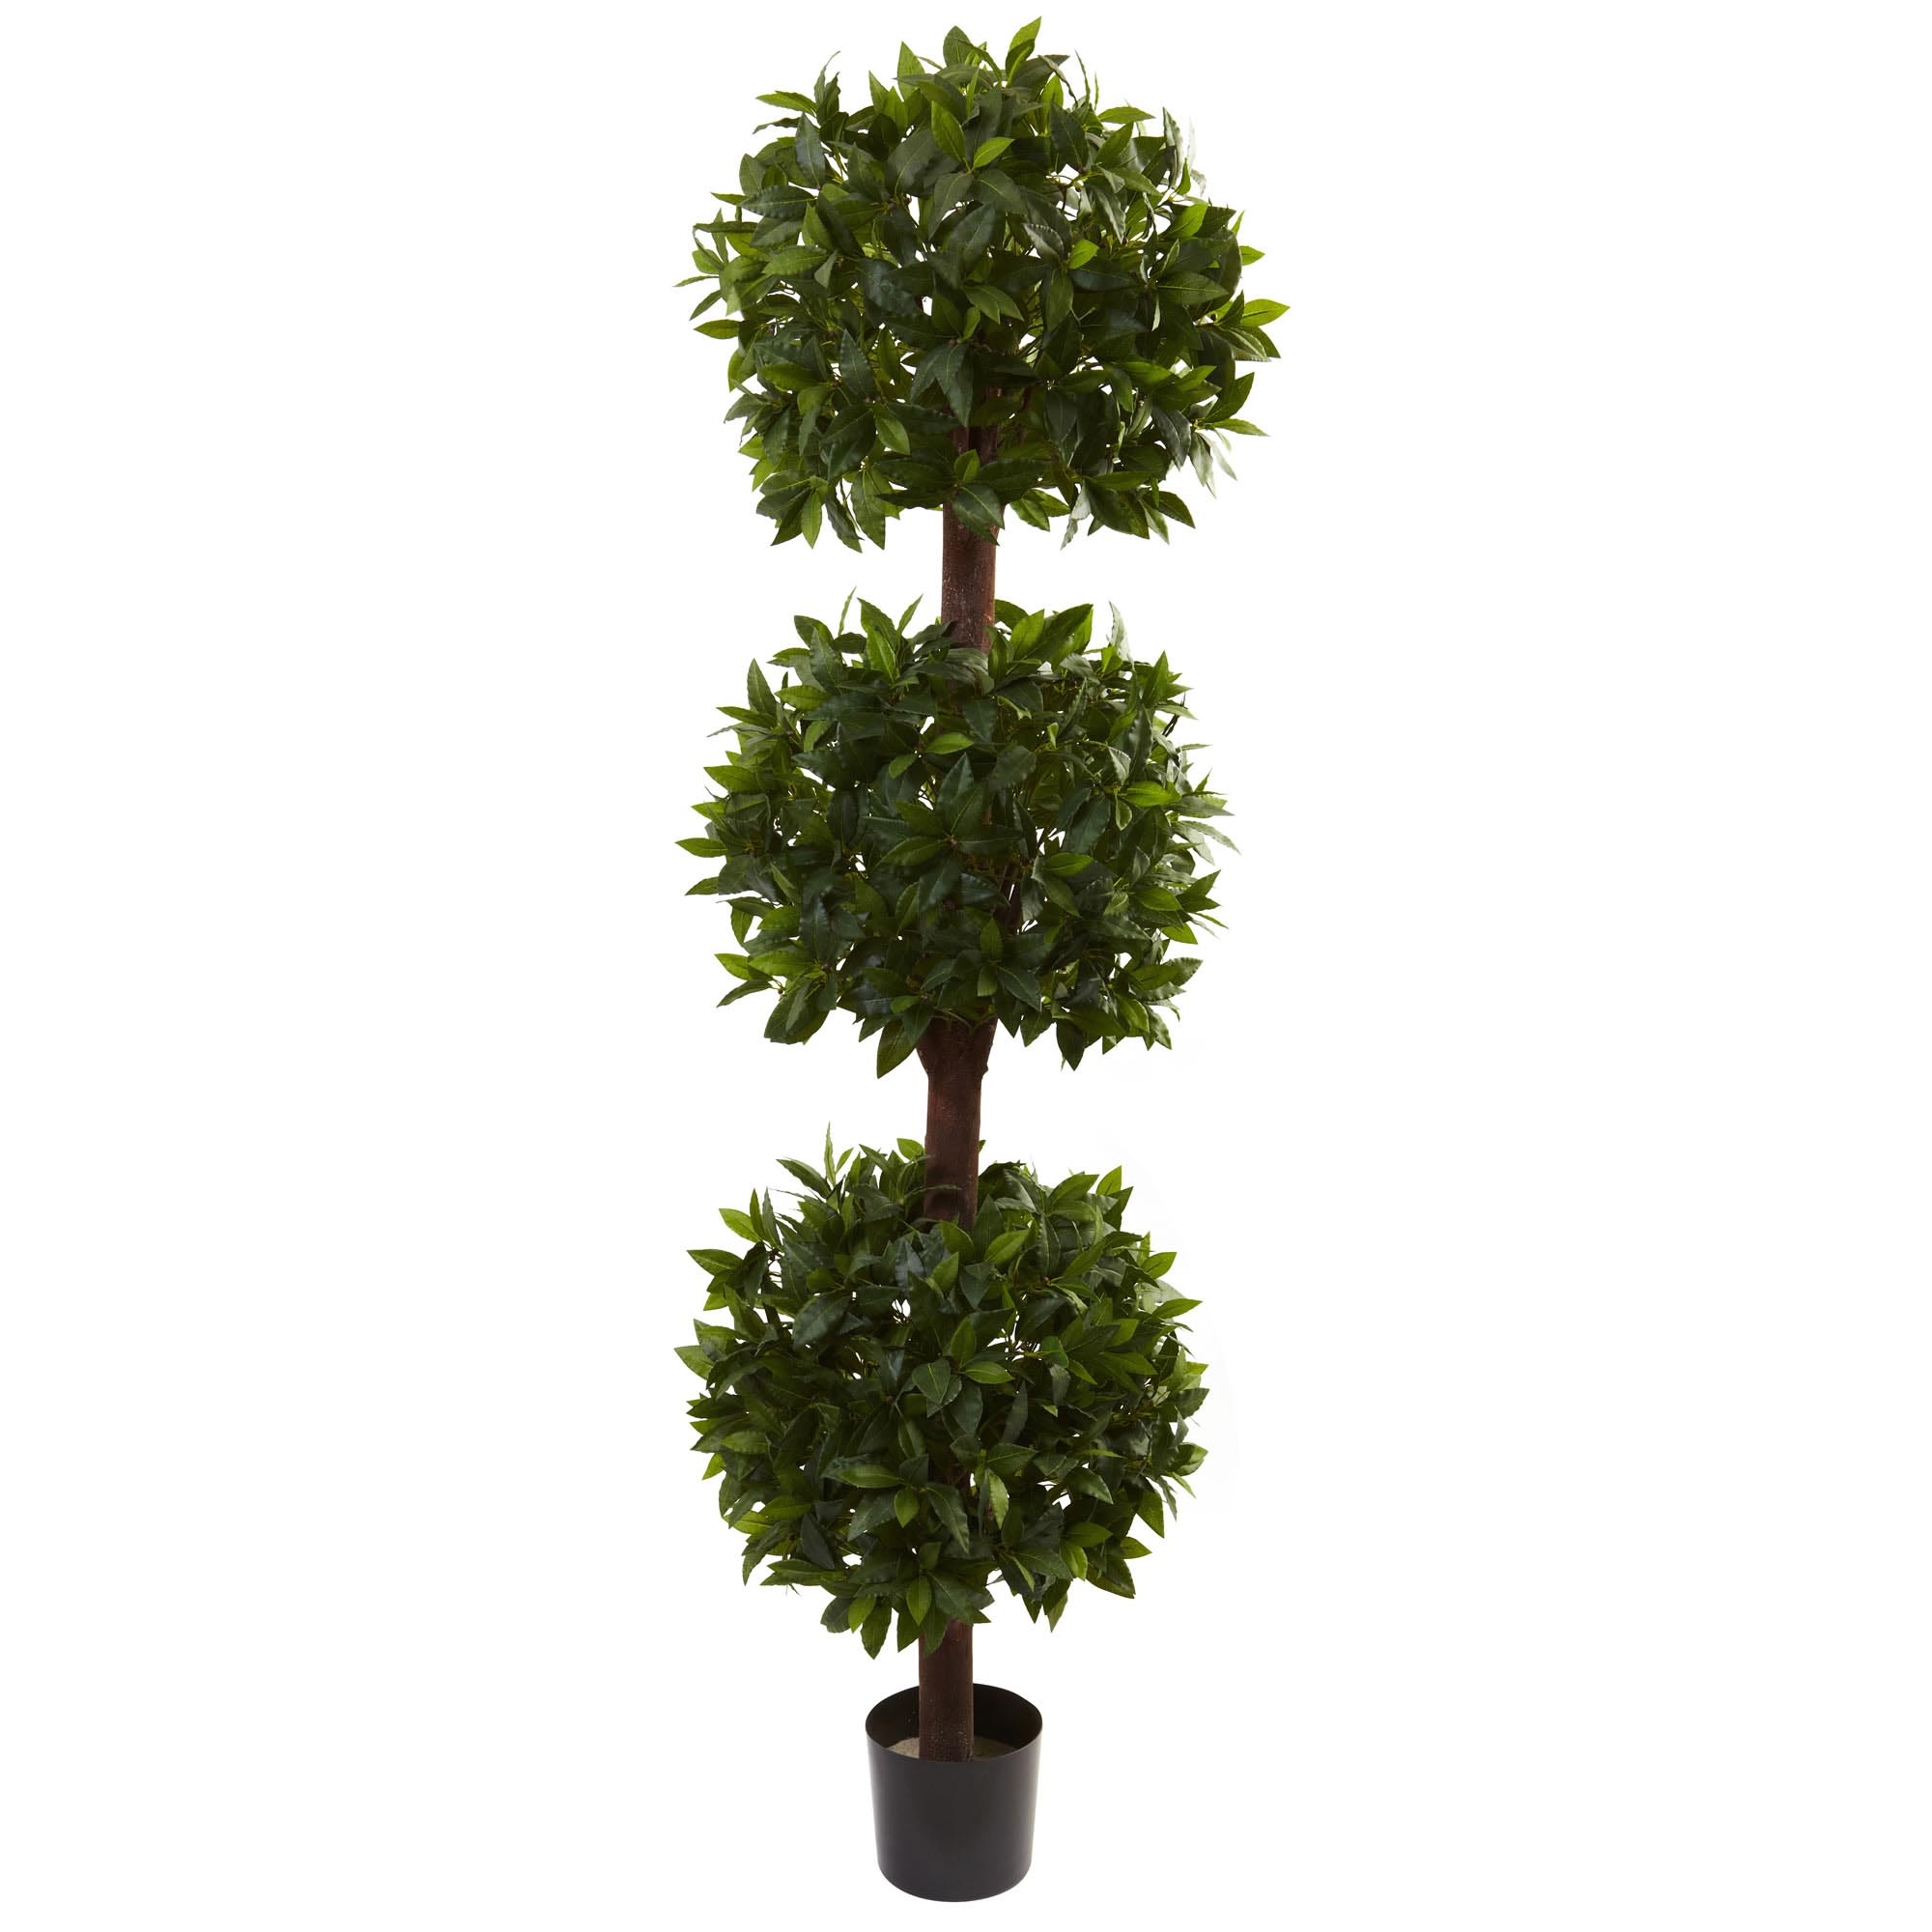 Check out the Artificial Sweet Bay Triple Ball Topiary Potted Product Photo